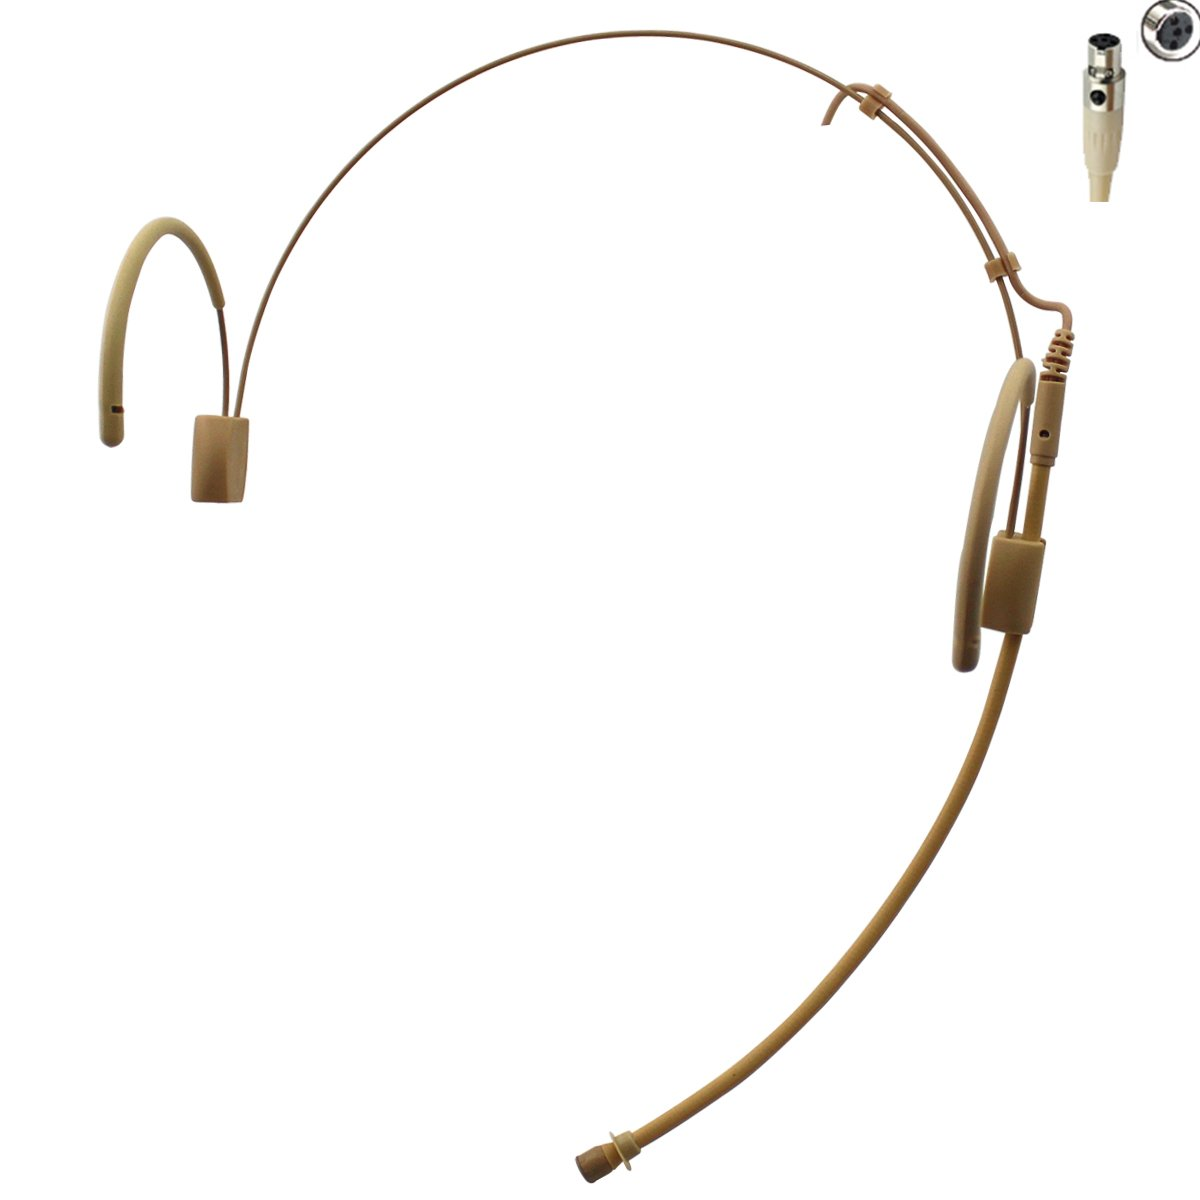 Pro Earhook Headset Headworn Omnidirectional Microphone JK MIC-J 060 Compatible with Shure Wireless Transmitter - Mini XLR TA4F Plug by J K